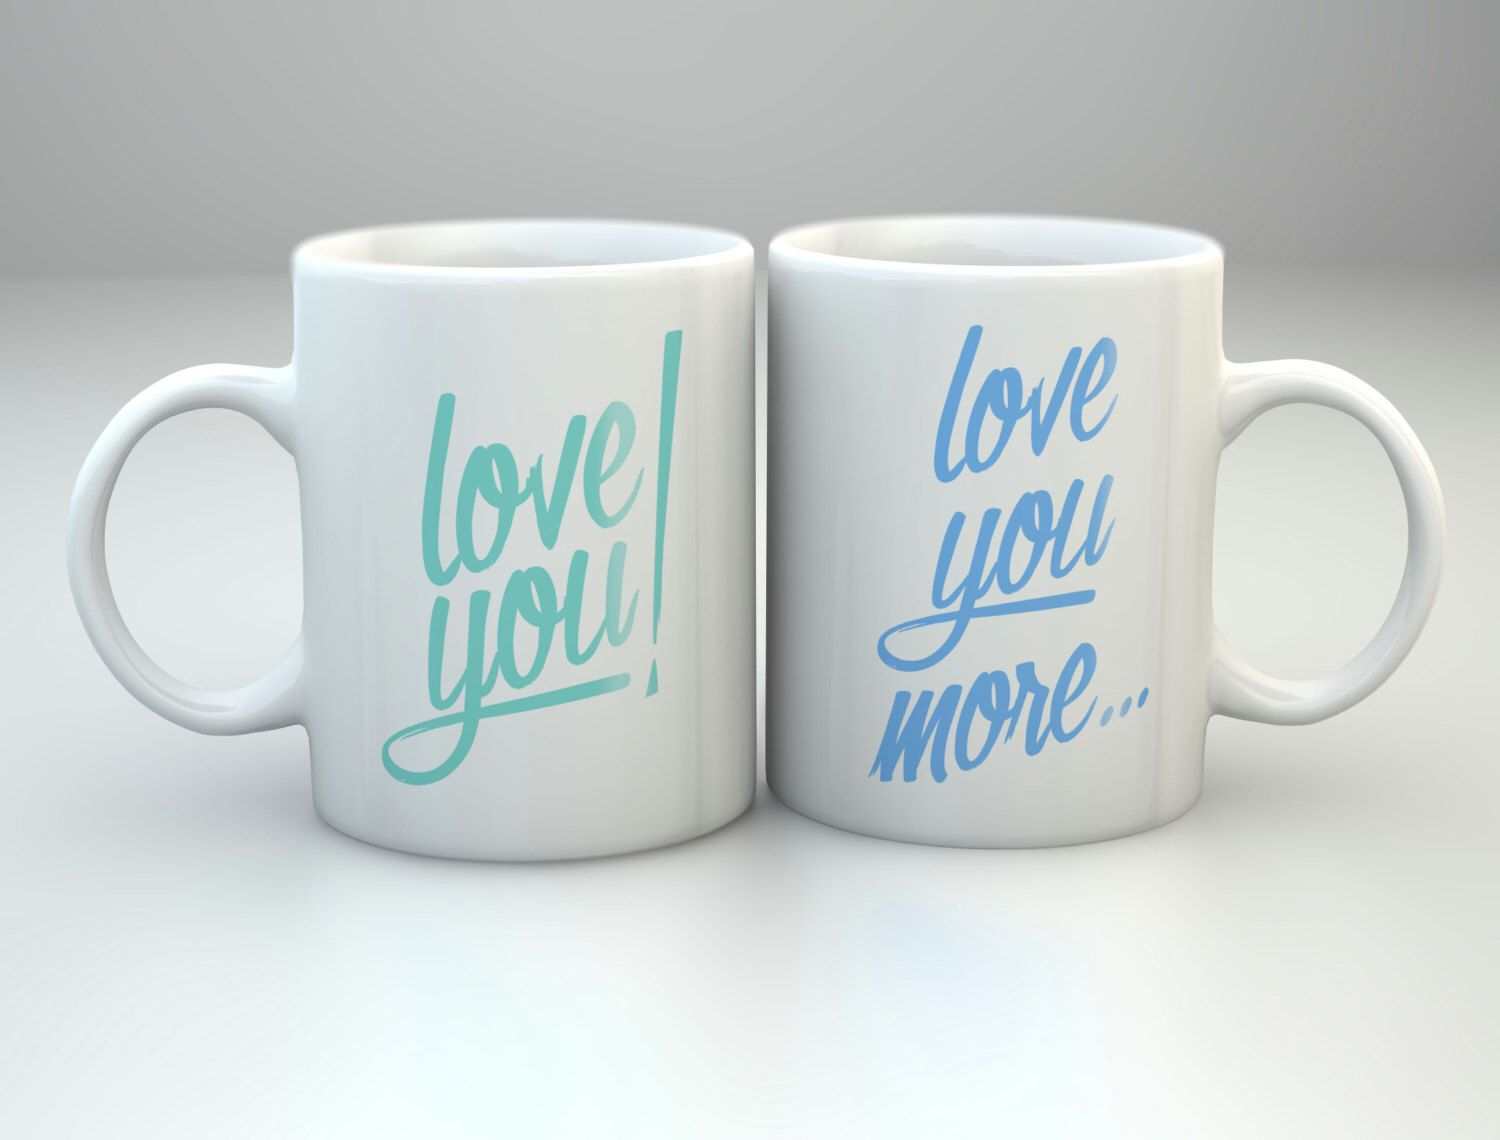 Love you love you more ceramic mug coffee lover gift for him